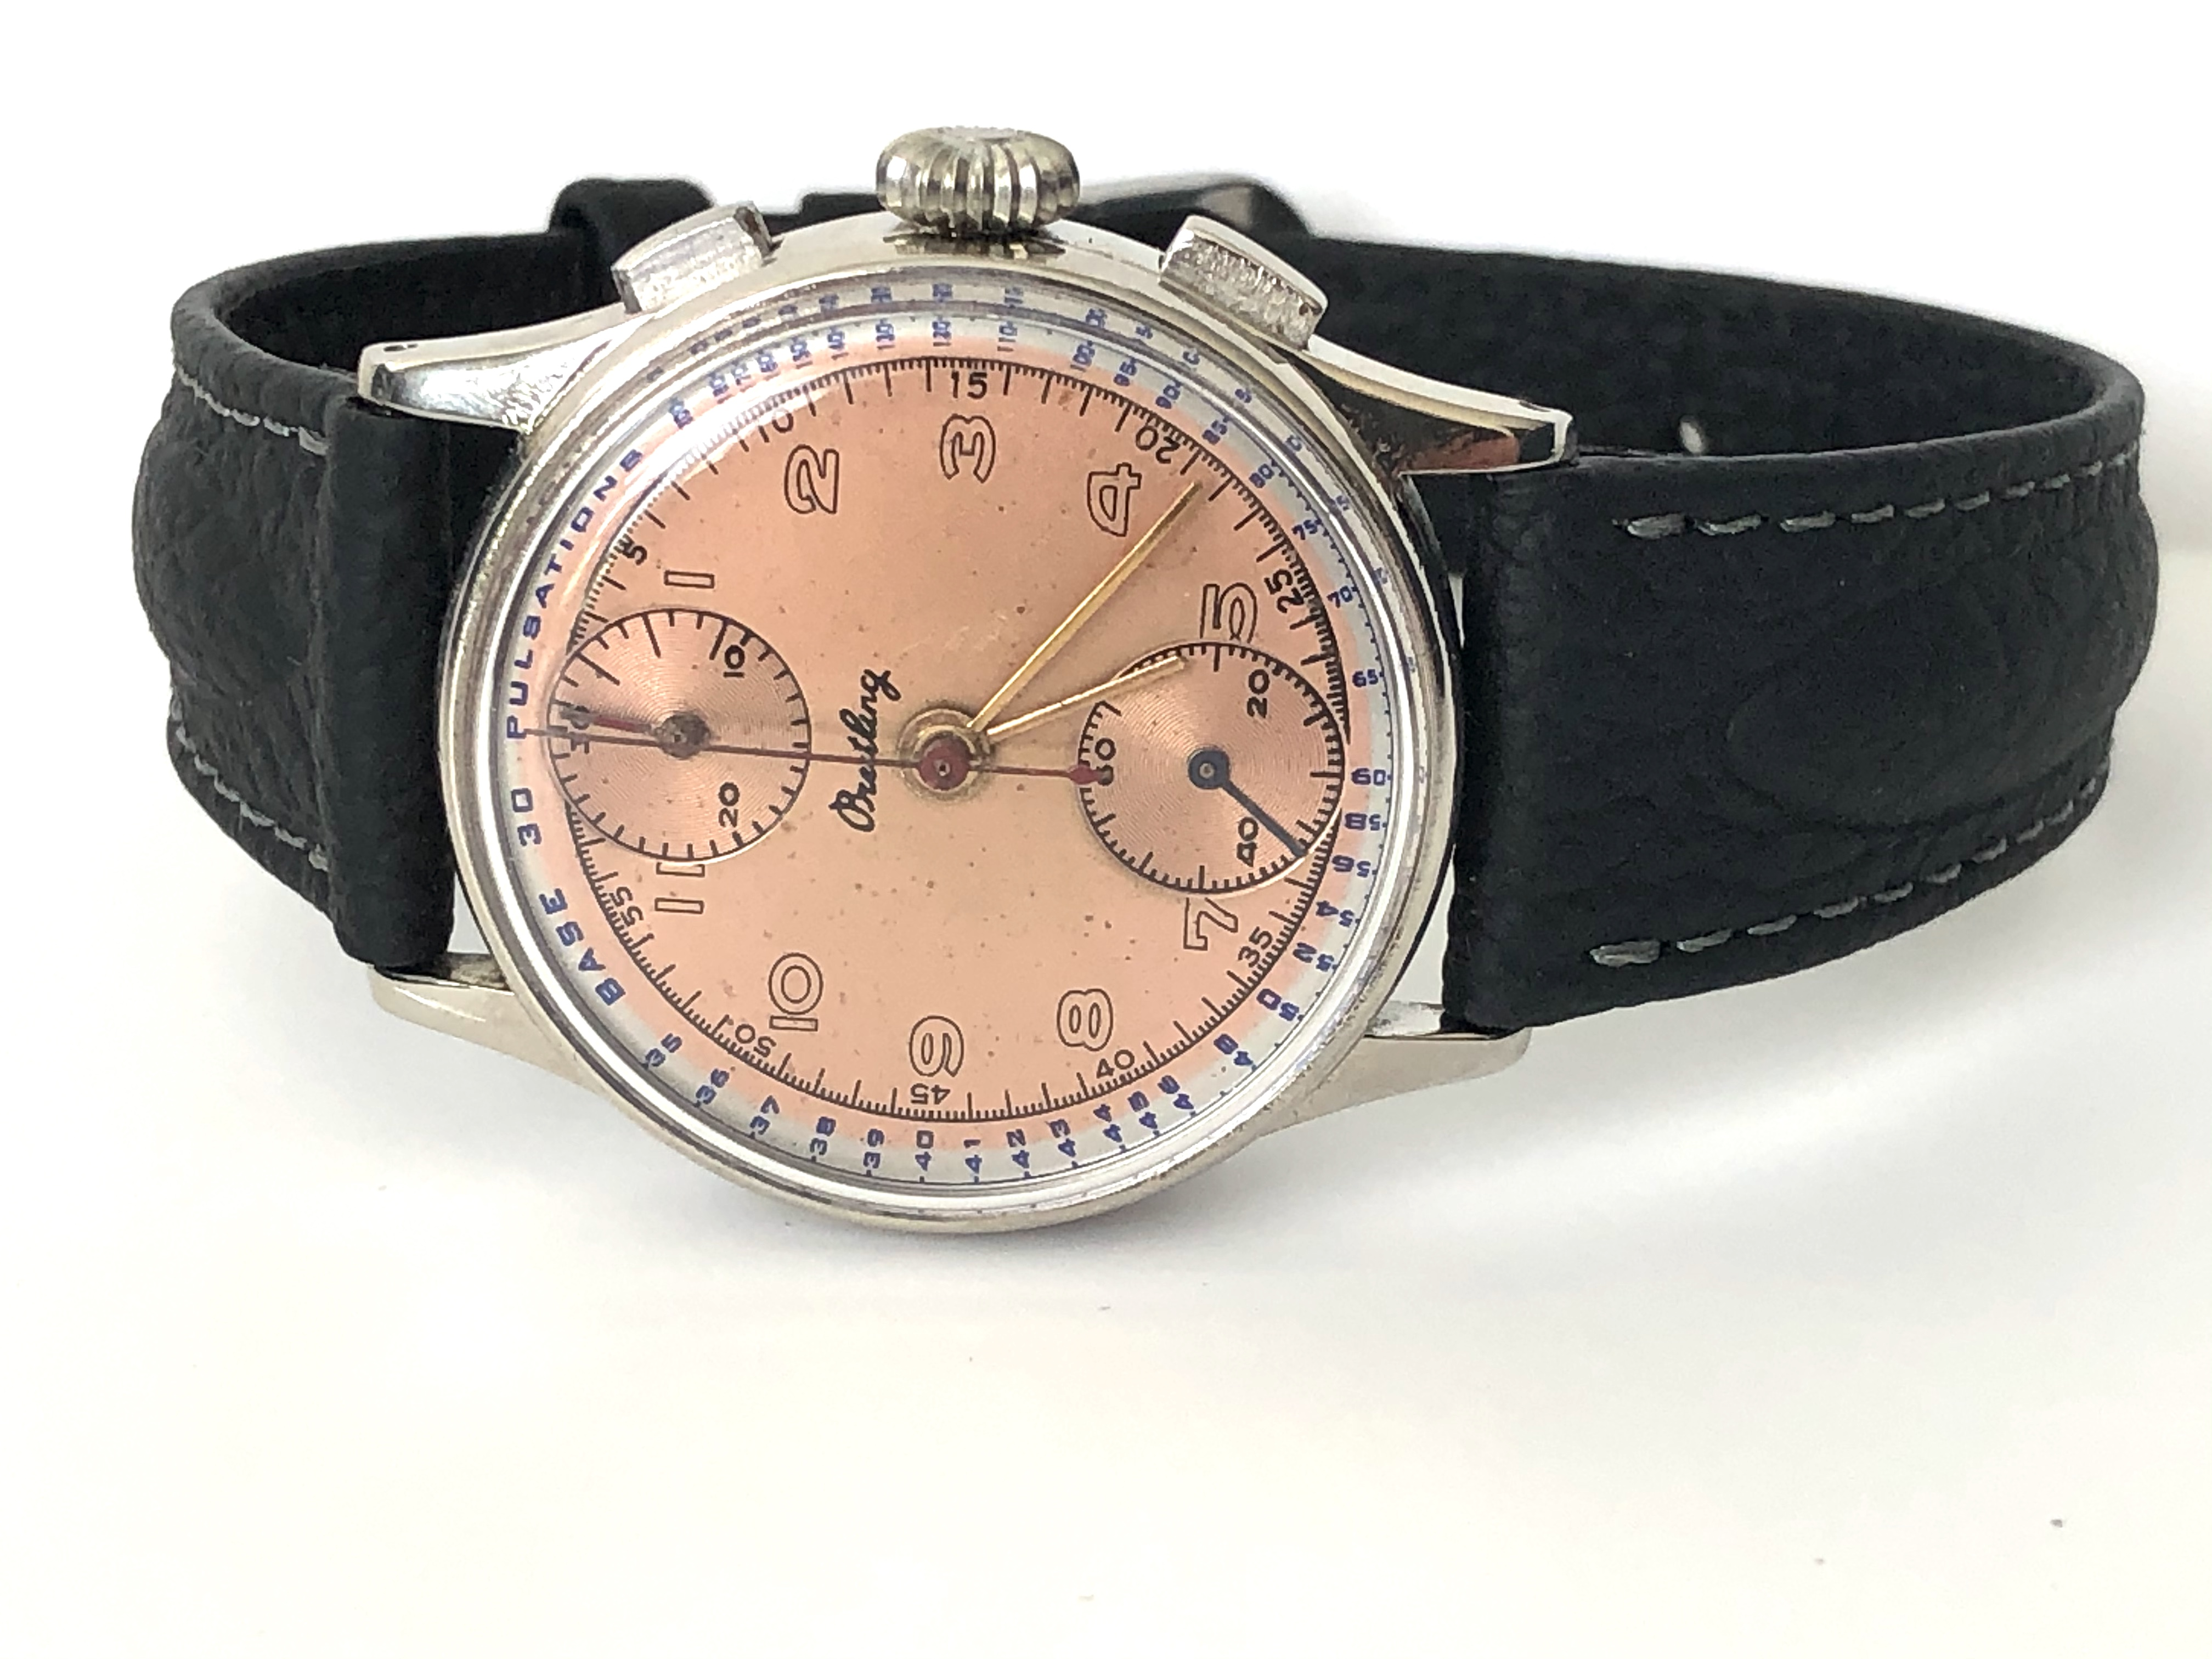 Lot 27 - Rare Vintage Breitling Chronograph Watch Circa 1940's